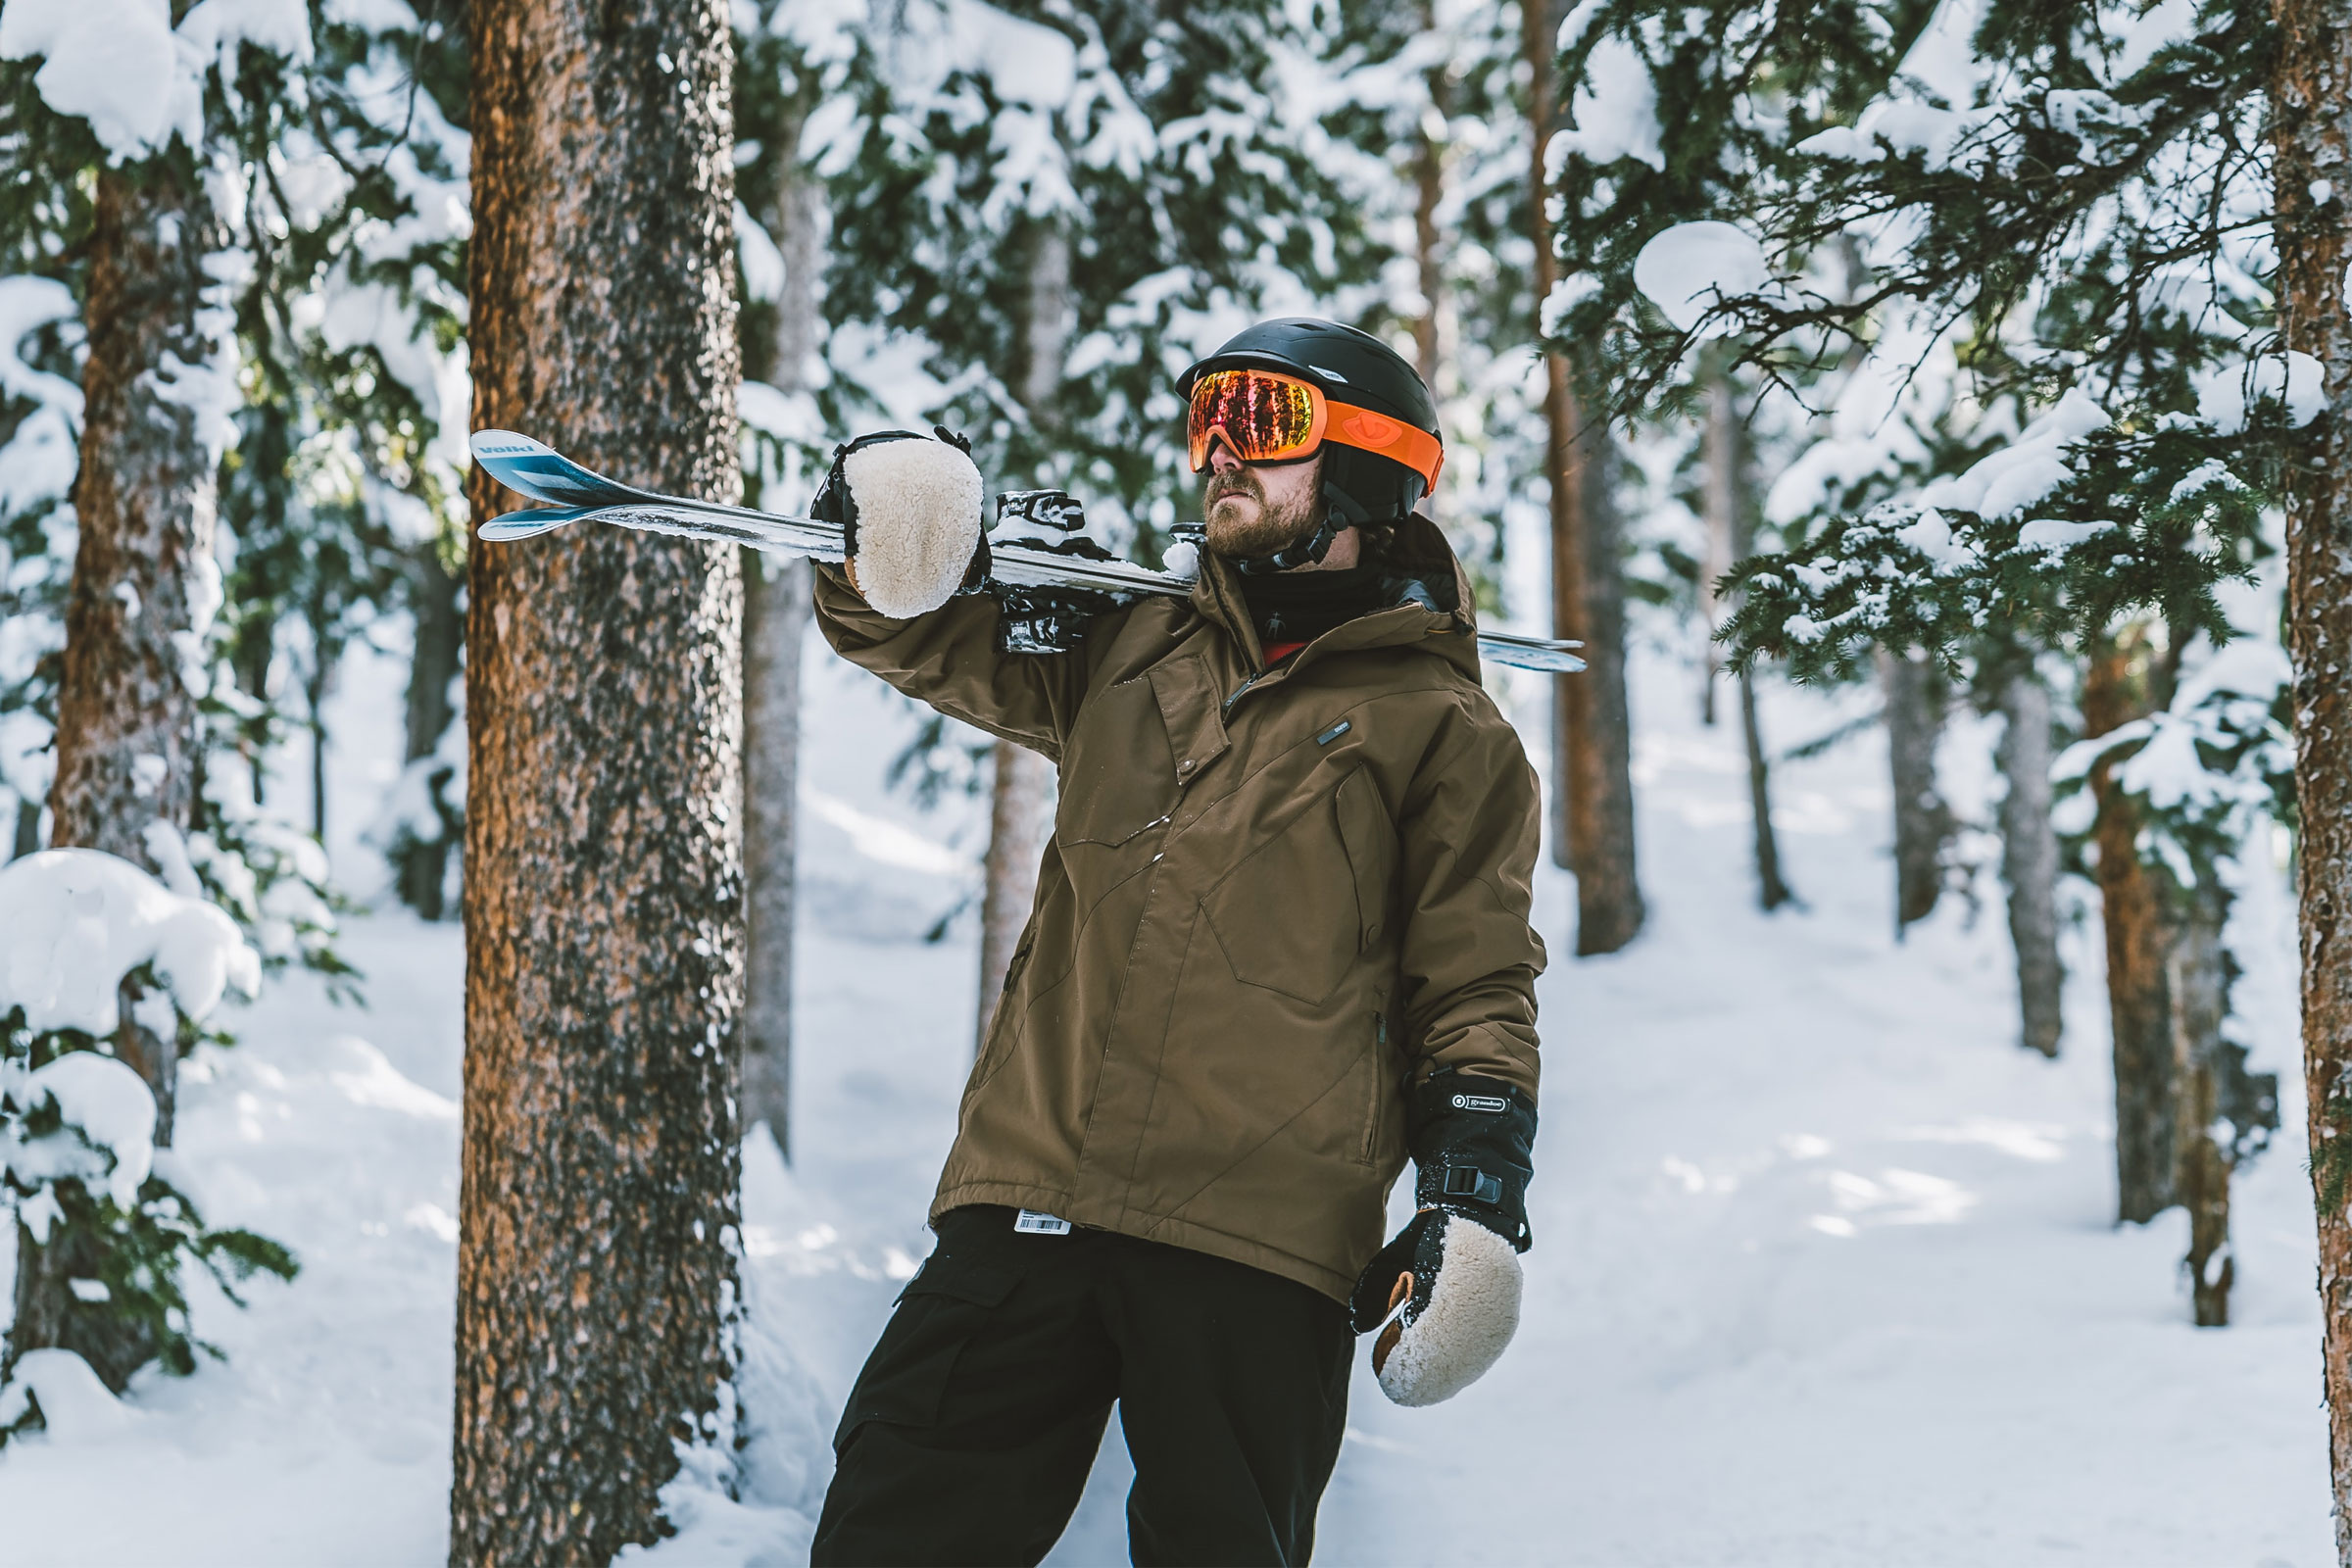 man holding skis in the woods while wearing winter jacket